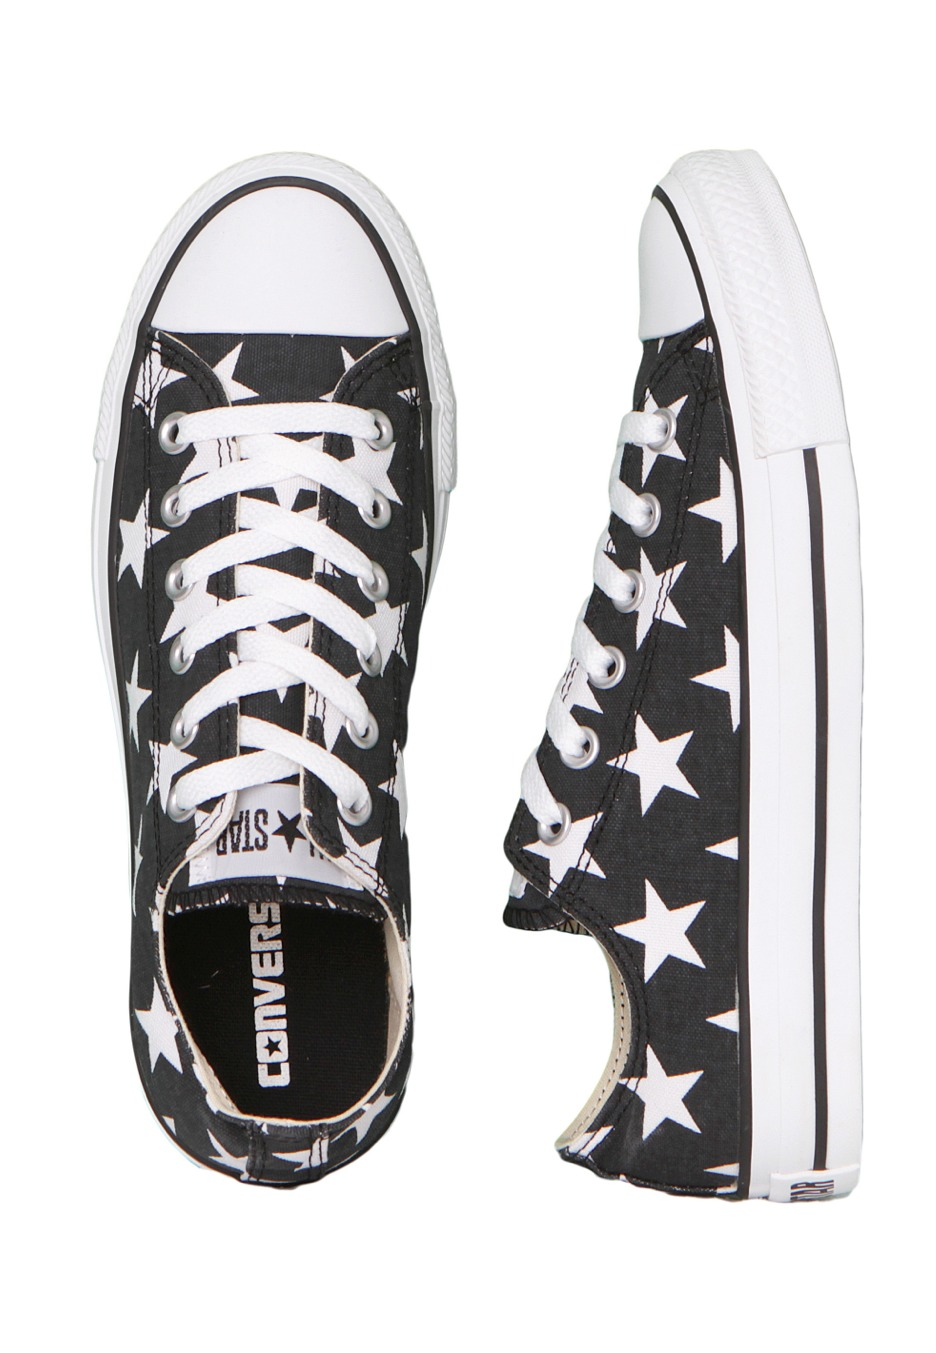 all star shoes for girls 2013. converse - all star ox can basic black/white girl shoes impericon.com uk for girls 2013 a